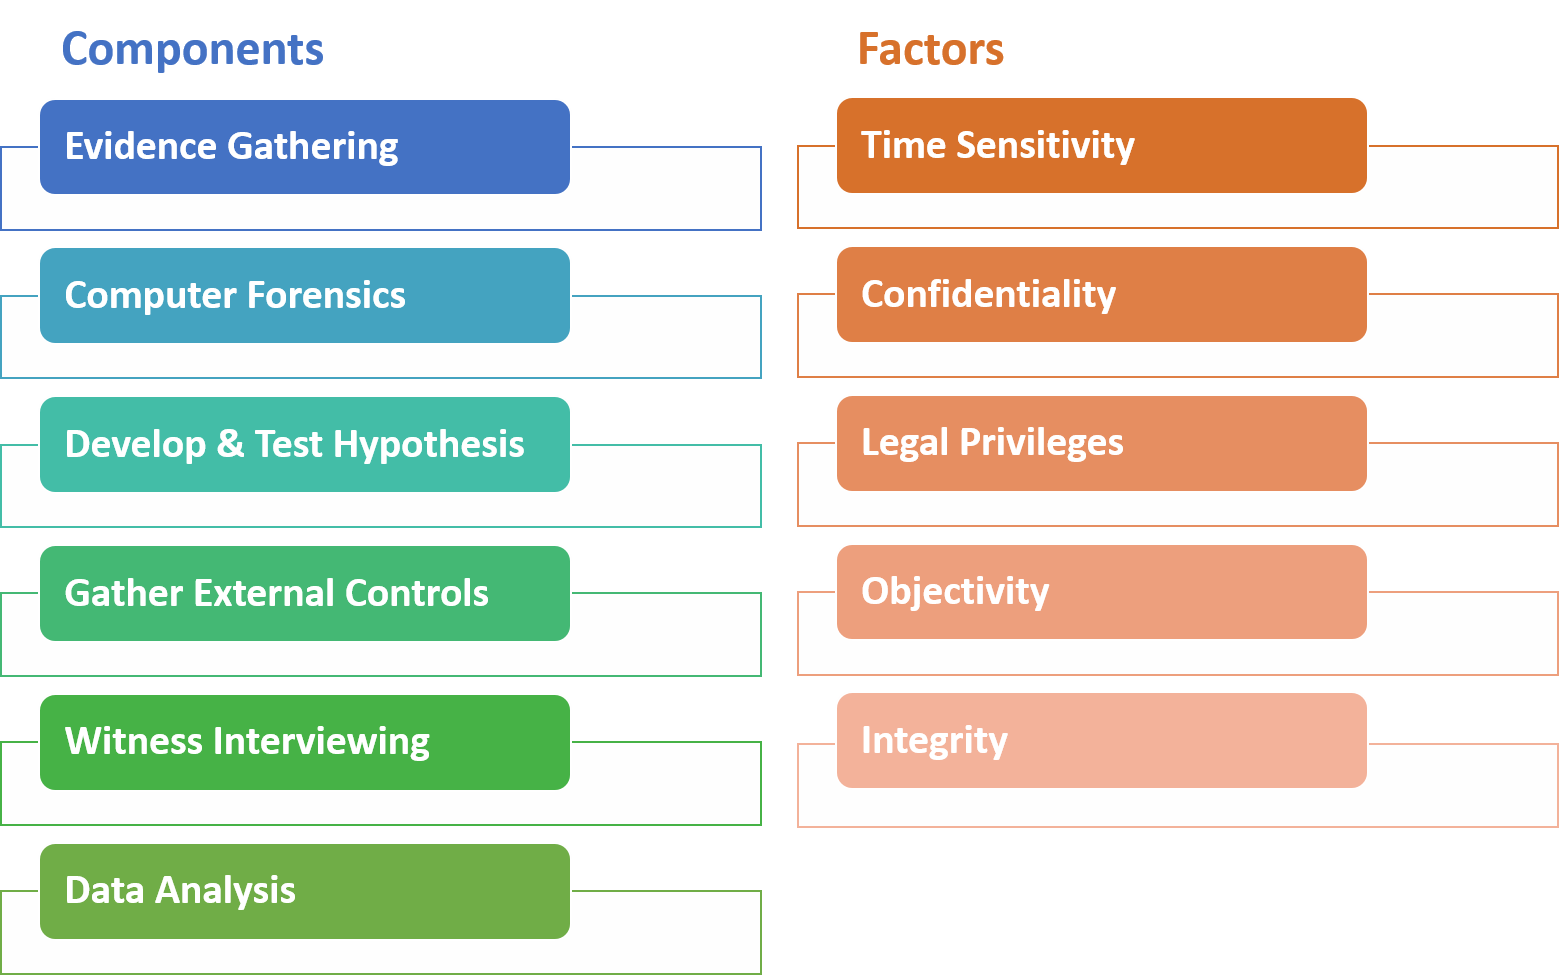 Components: Evidence Gathering, Computer Forensics, Develop & Test Hypothesis, Gather External Controls, Witness Interviewing, Data Analysis. Factors: Time Sensitivity, Confidentiality, Legal Privileges, Objectivity, Integrity